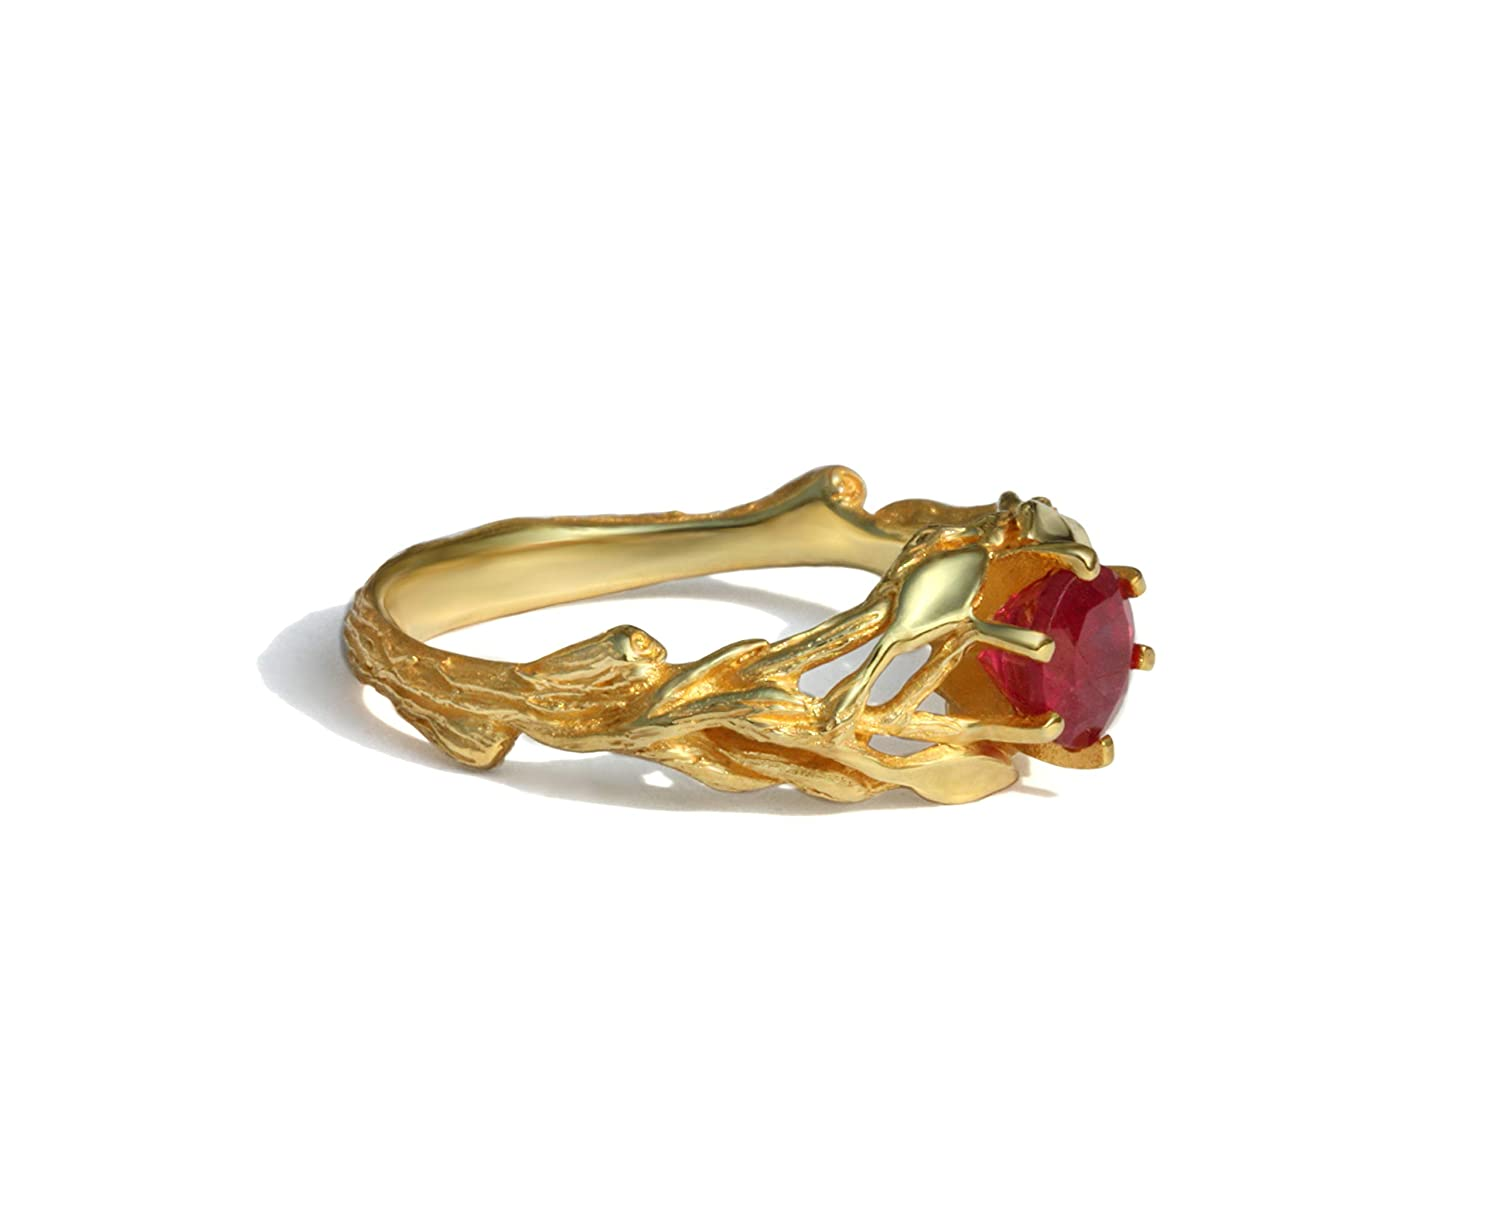 Leaves branches engagement low-pricing ring natural leafs Limited Special Price solid 18k 14k ruby